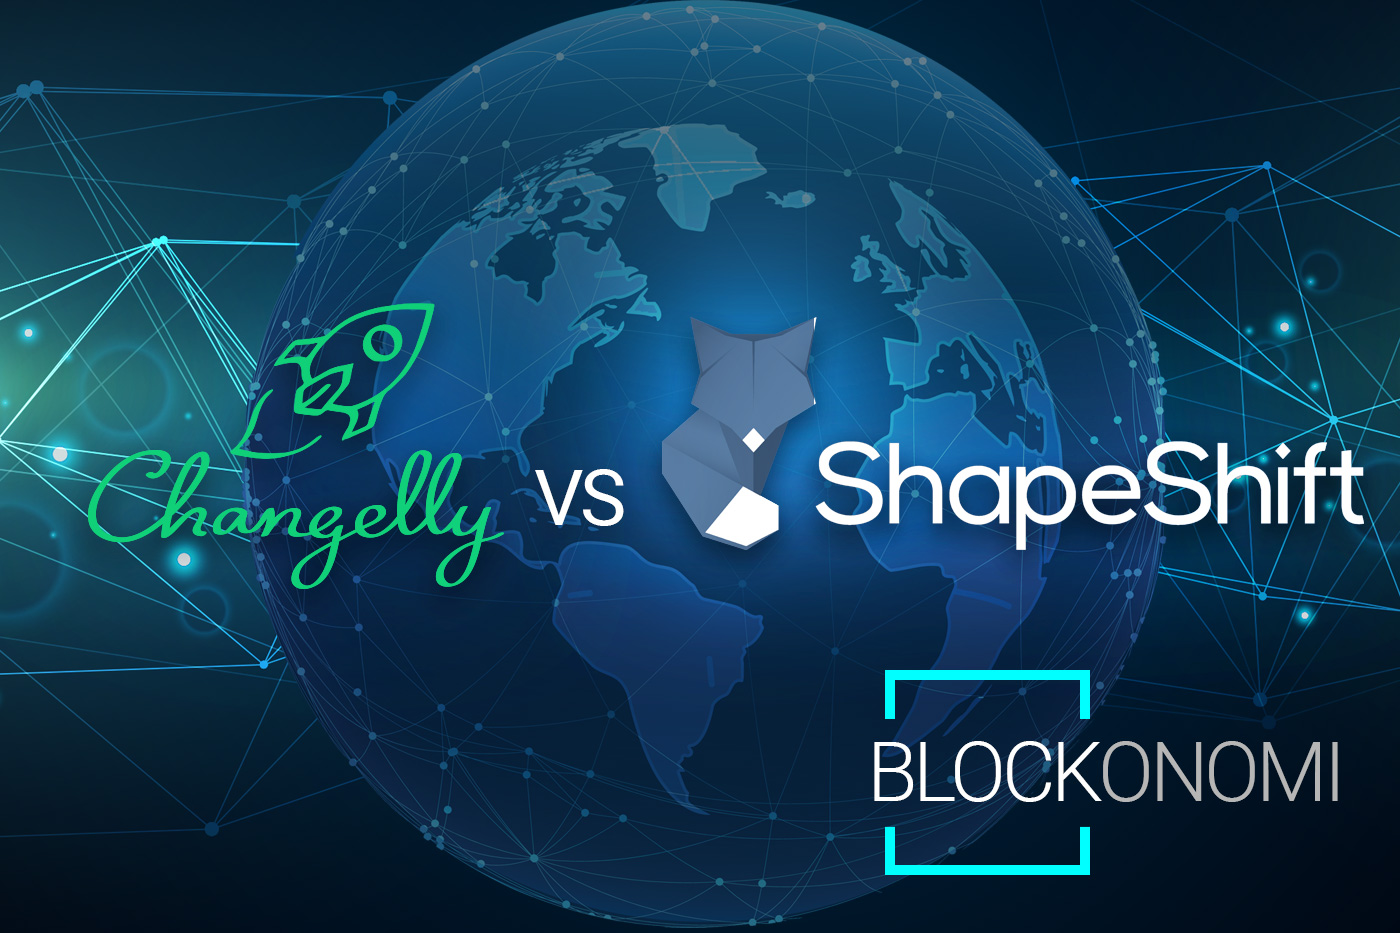 Changelly vs Shapeshift